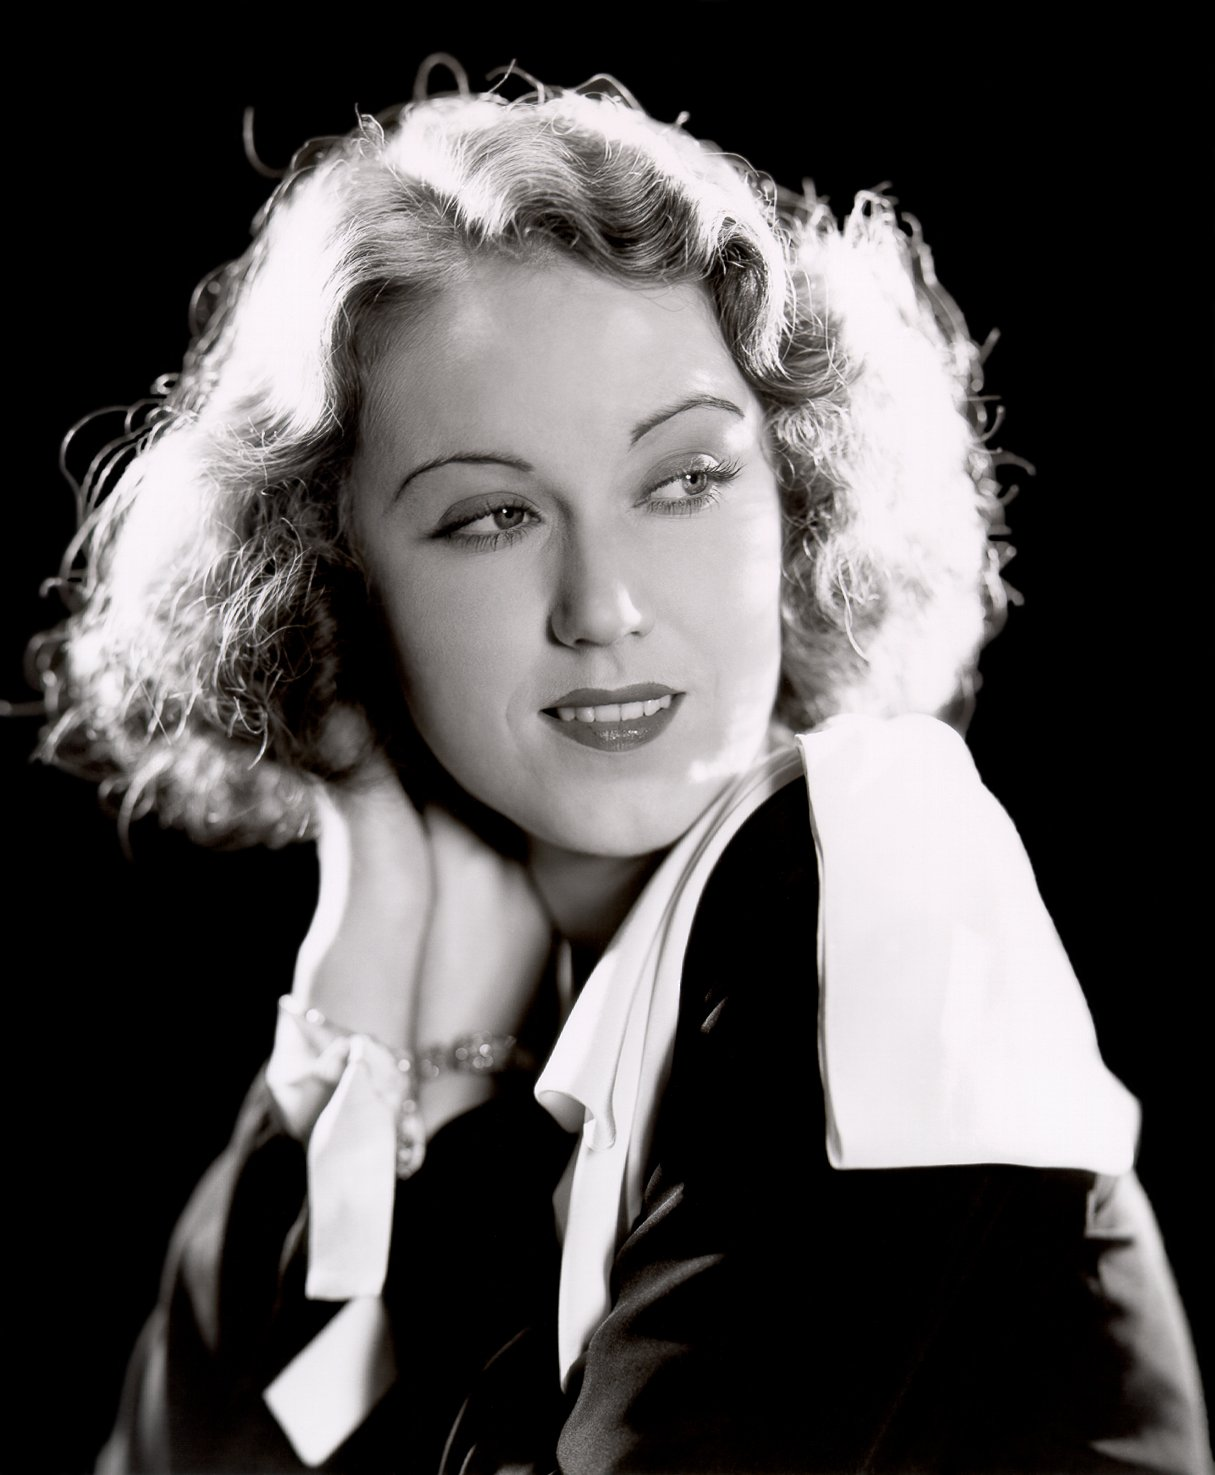 Studio publicity photo of Fay Wray. | Source: Wikimedia Commons